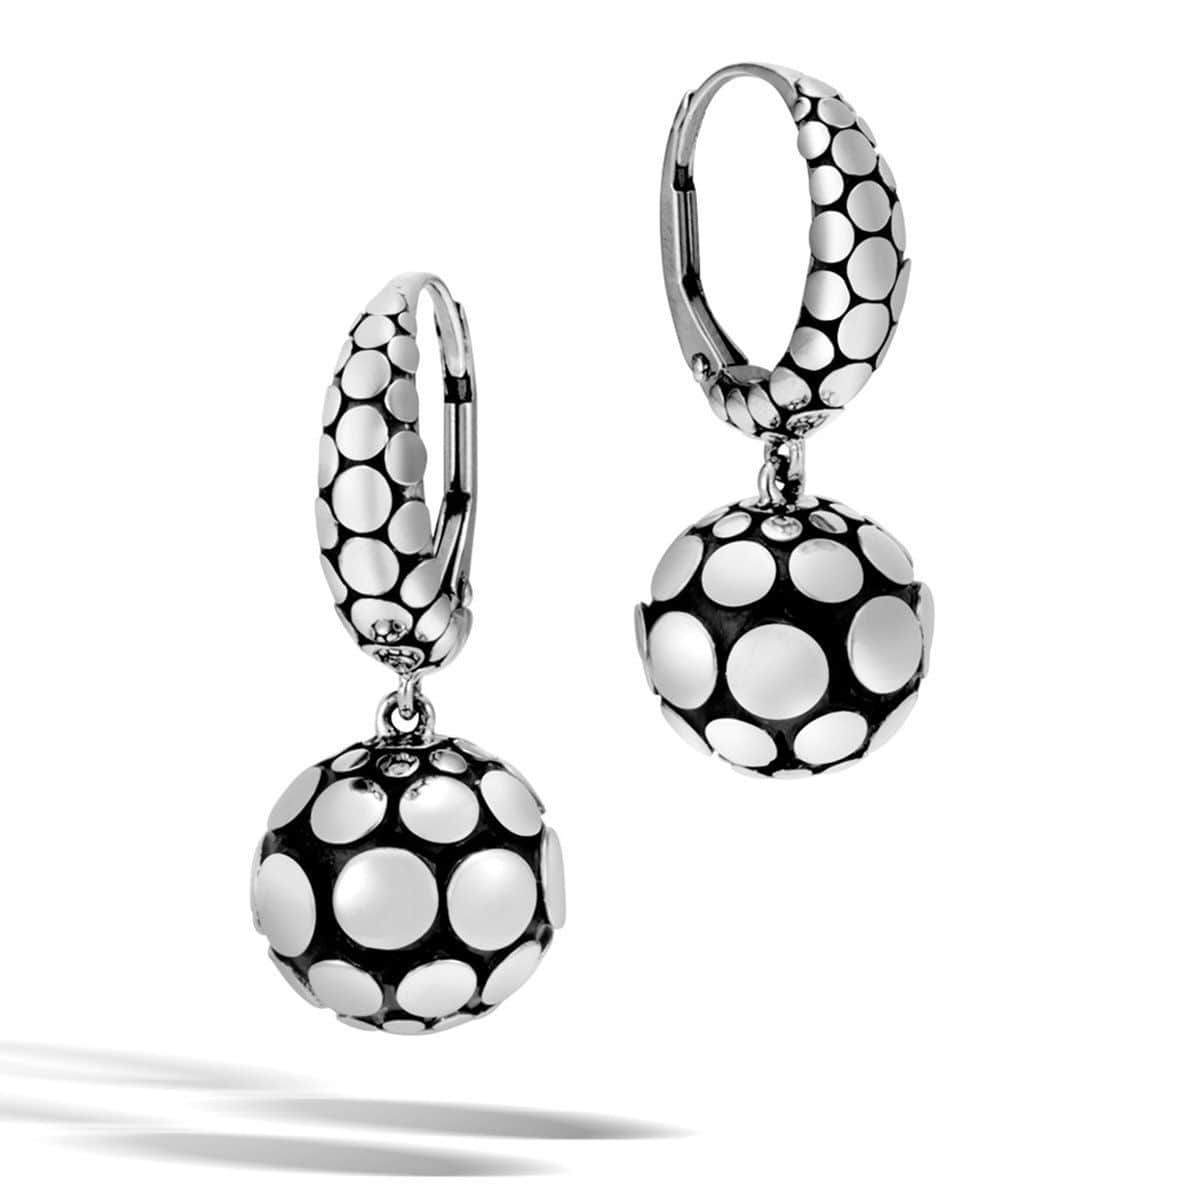 Dot Sterling Silver Drop Earrings - EB39243